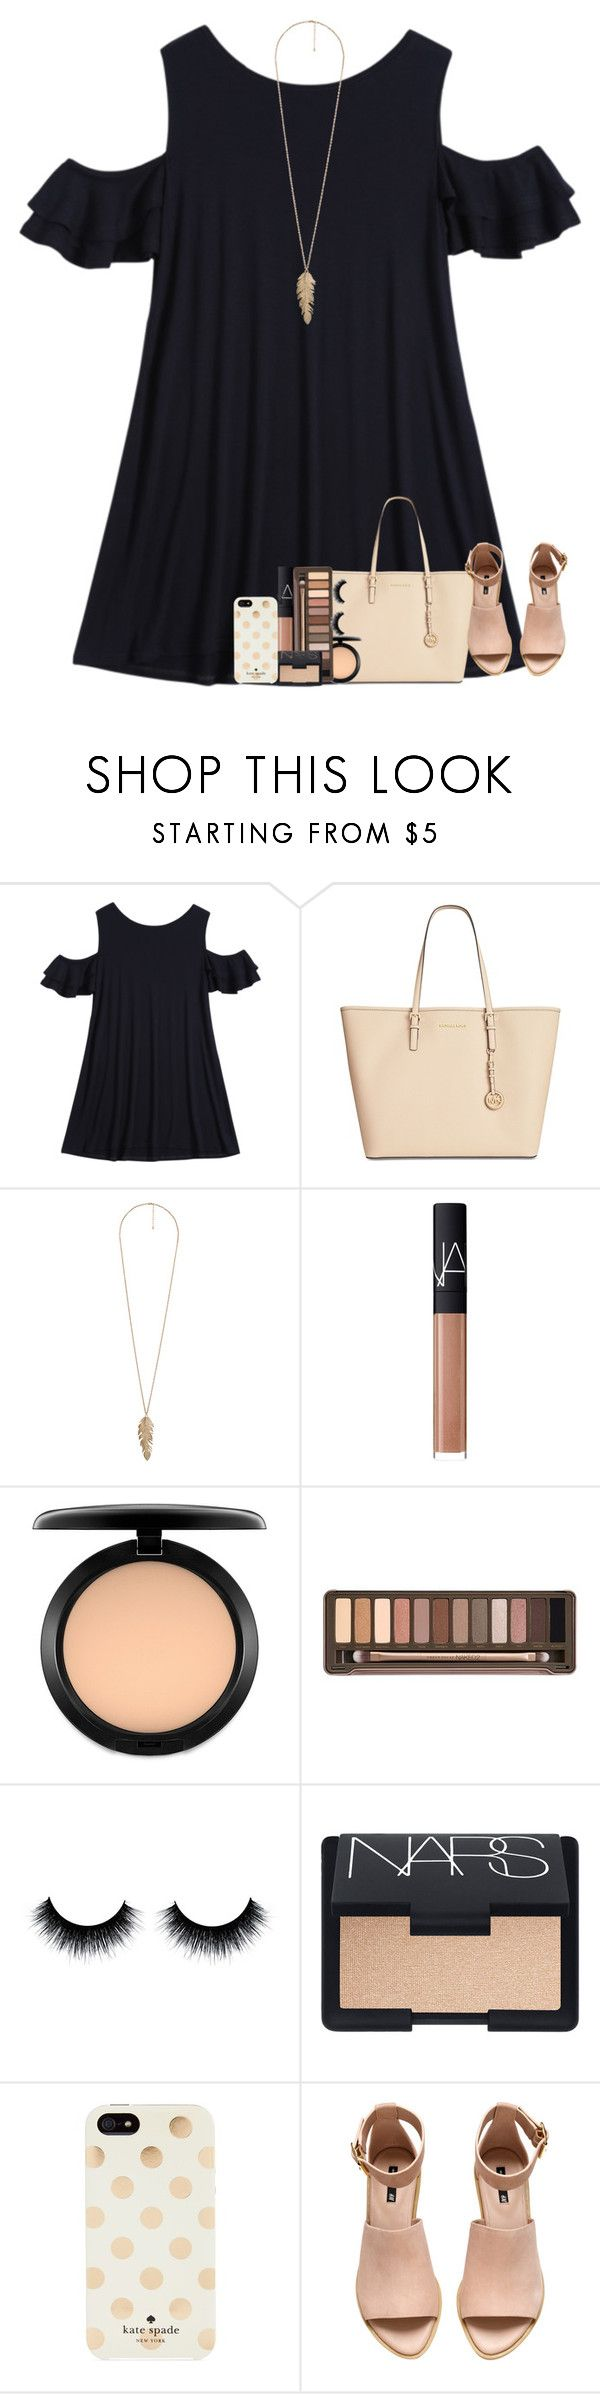 """""""If The Whole World Was Watching, I'd Still Dance With You"""" by theafergusma ❤ liked on Polyvore featuring Michael Kors, Forever 21, NARS Cosmetics, MAC Cosmetics, Urban Decay, Kate Spade and H&M"""